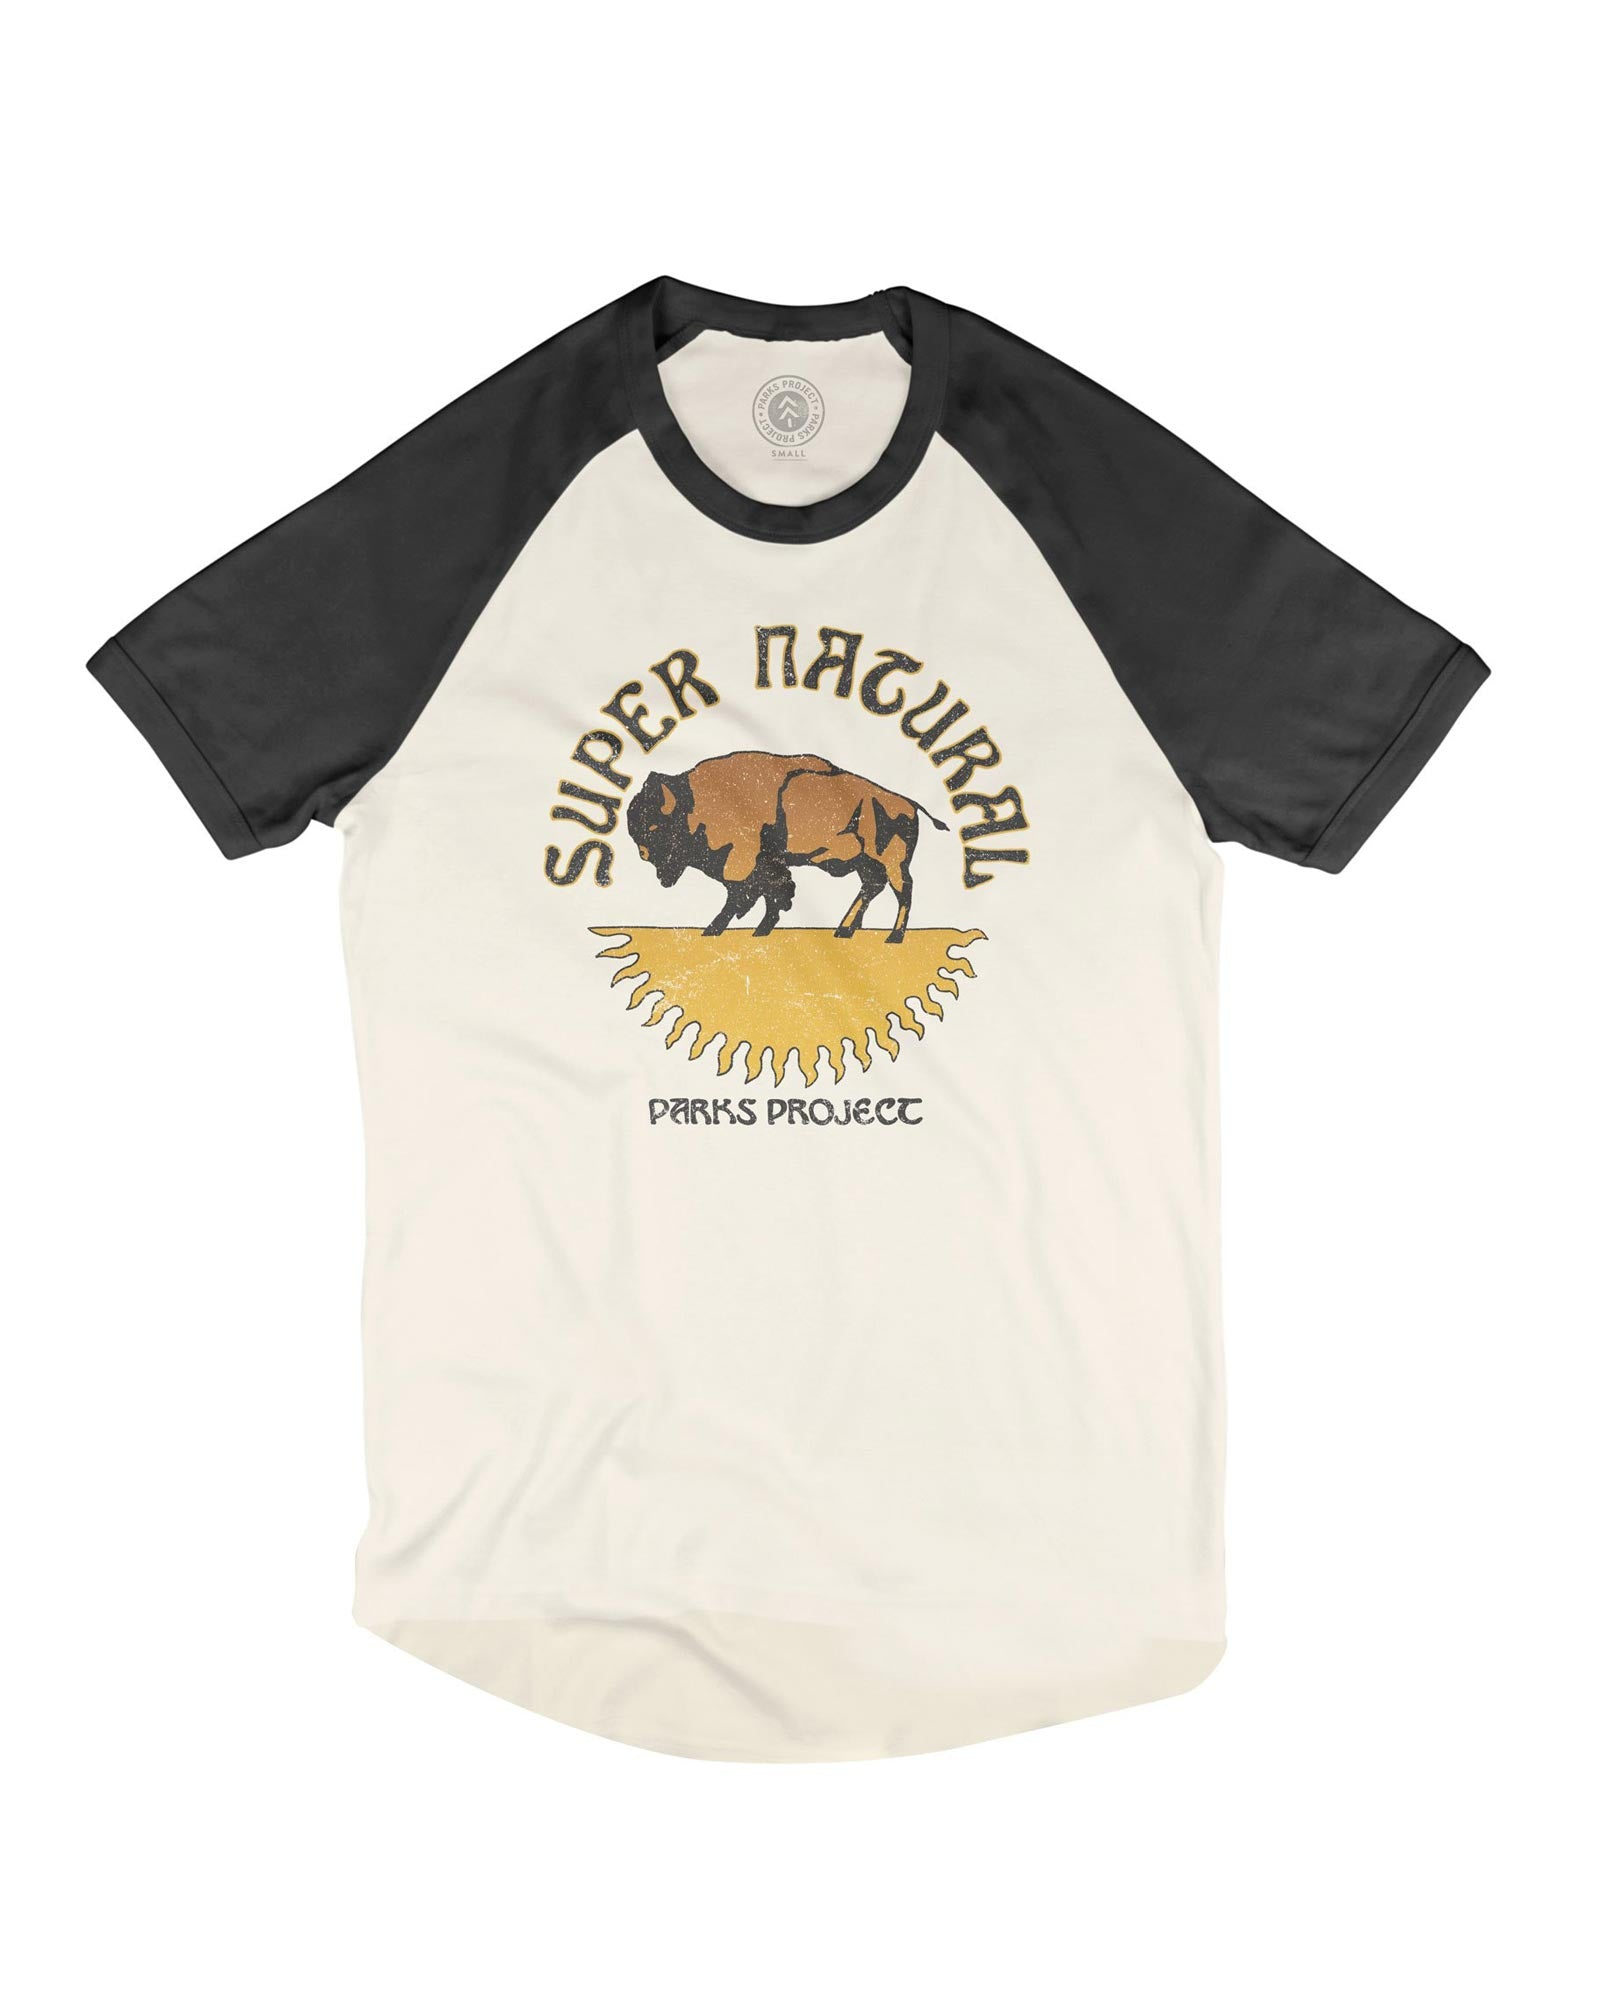 Super Natural Tee | Parks Project | National Park T-Shirt